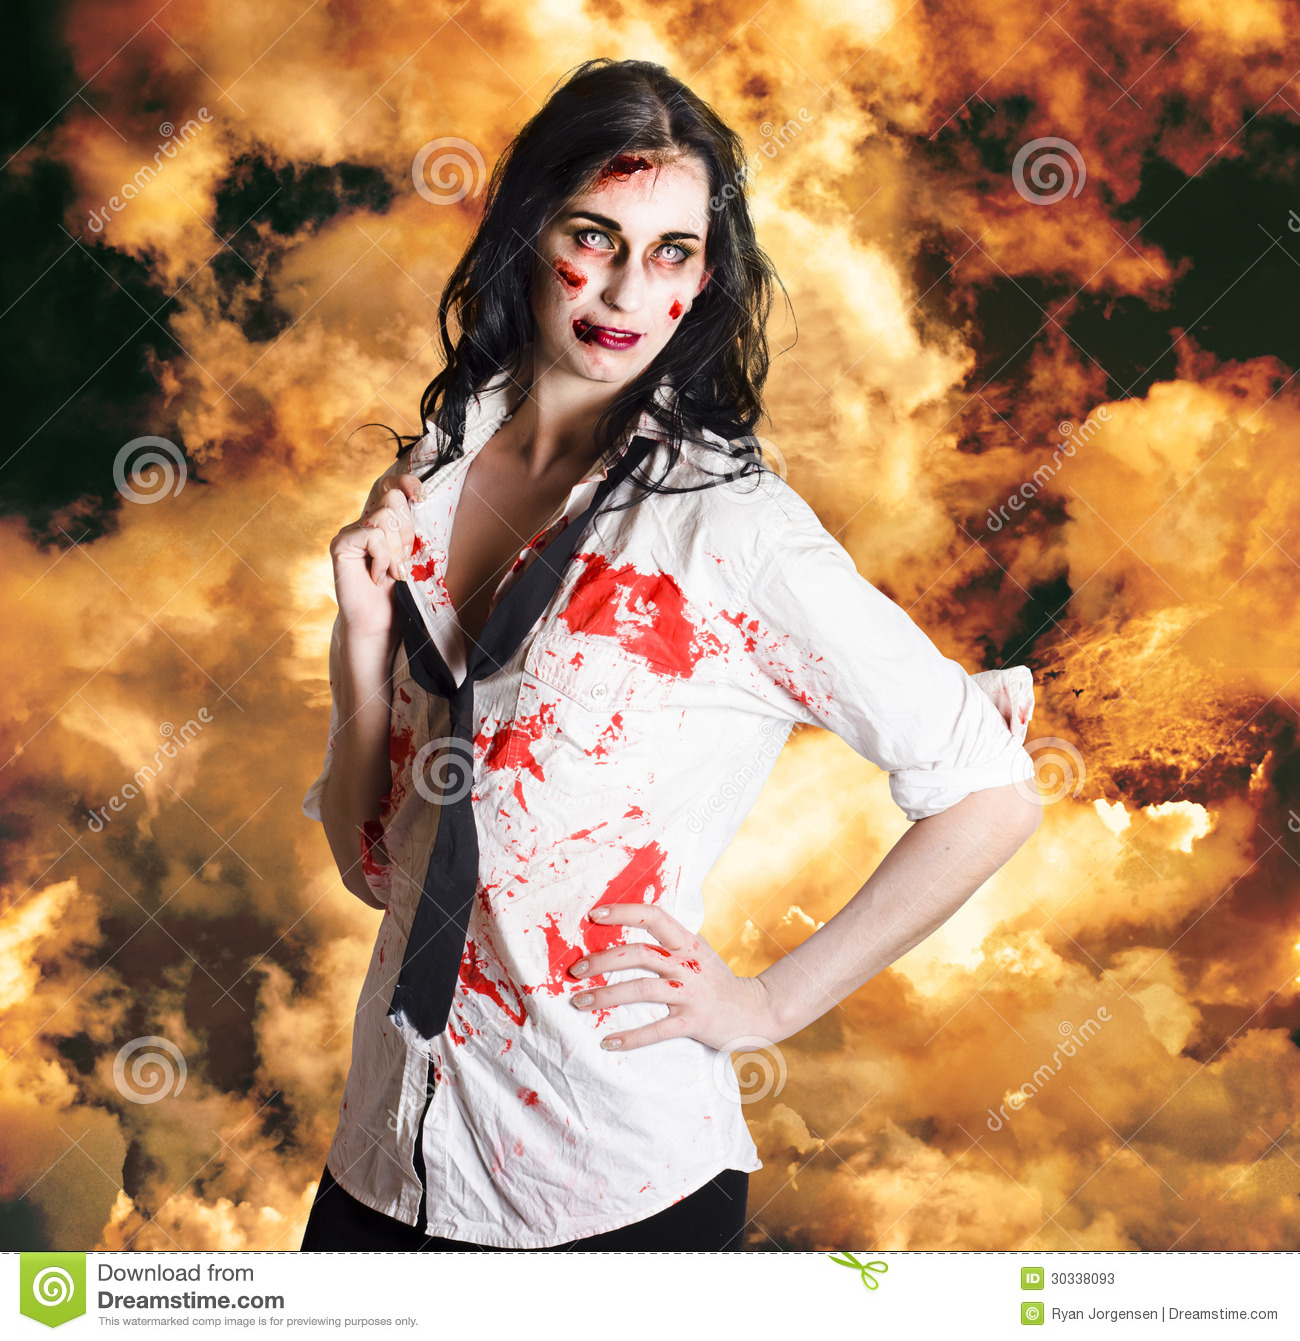 Hot zombie business woman on fire background stock image image of hot zombie business woman on fire background voltagebd Image collections